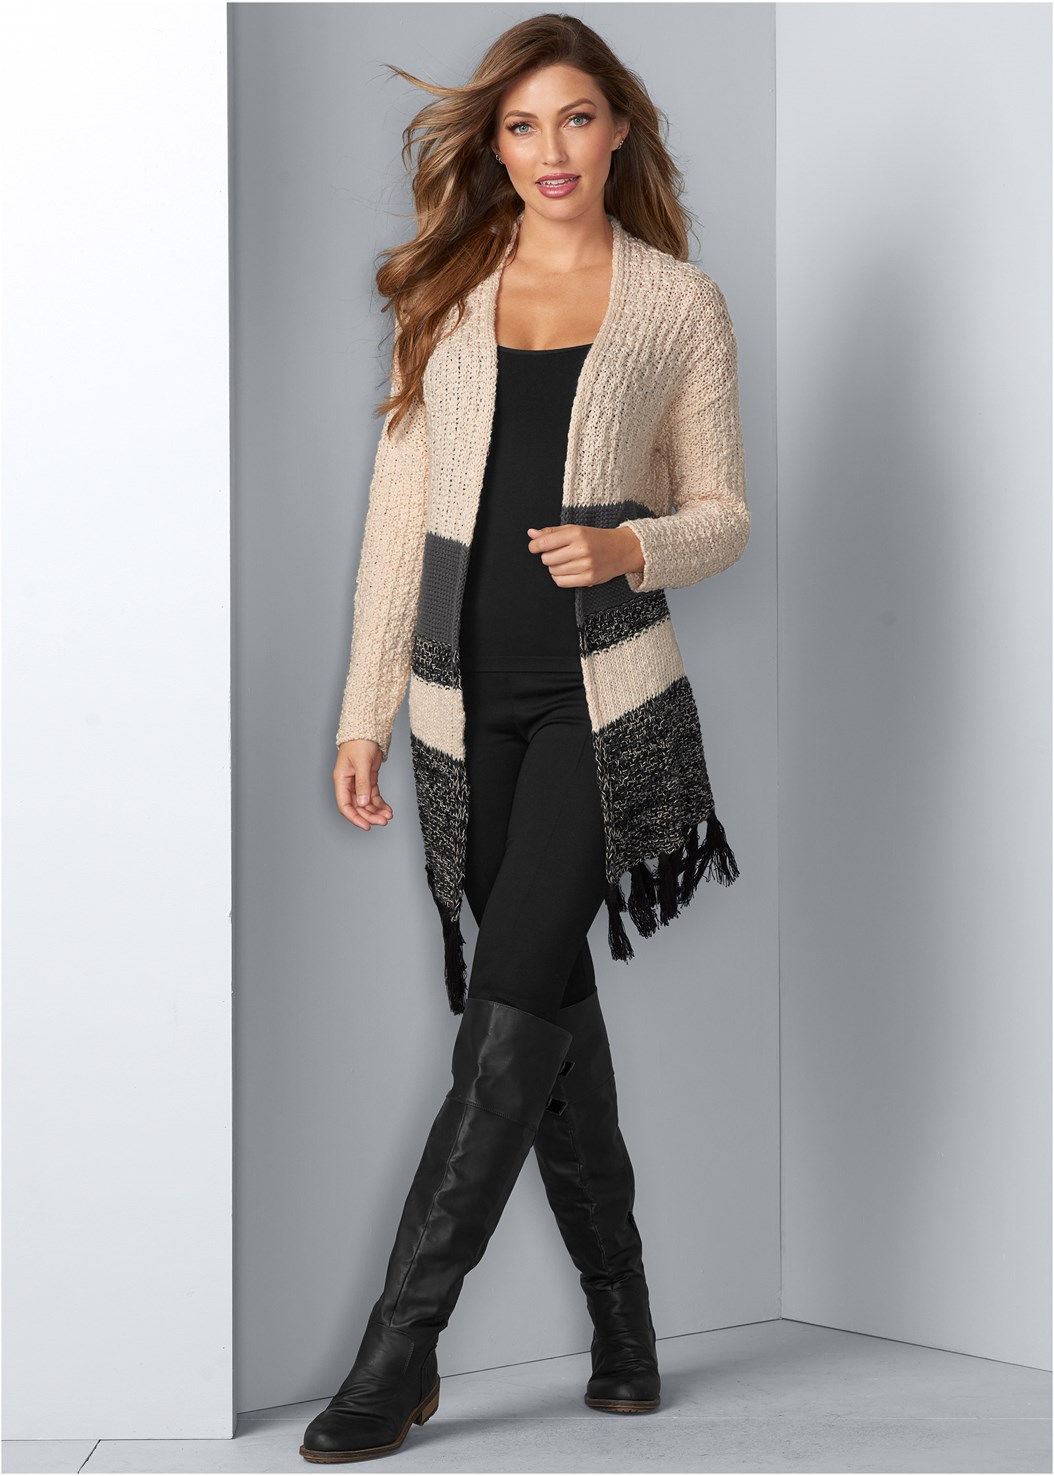 Tassel Detail Duster,Basic Cami Two Pack,Buckle Knee High Boots,Fringe Macrame Bag,Slouchy Mid-Calf Boot